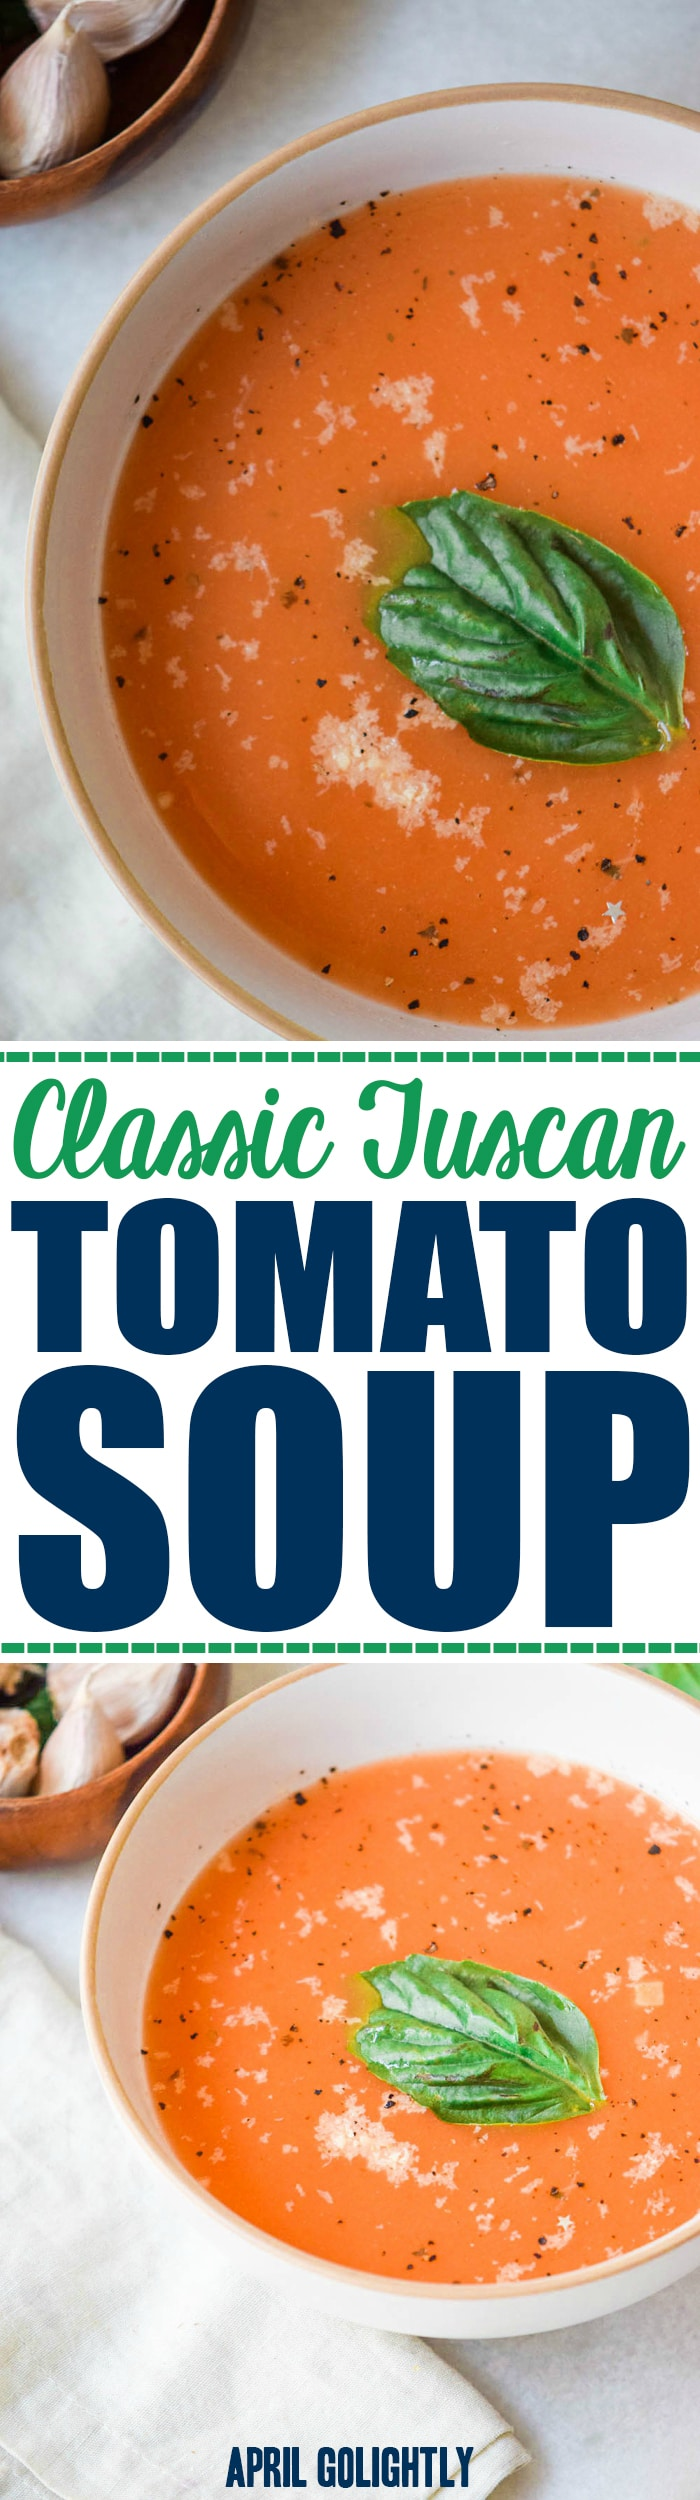 Classic Tuscan Tomato Soup Recipe made in one pot with veggies made vegan if you skip the cheese garnish on top